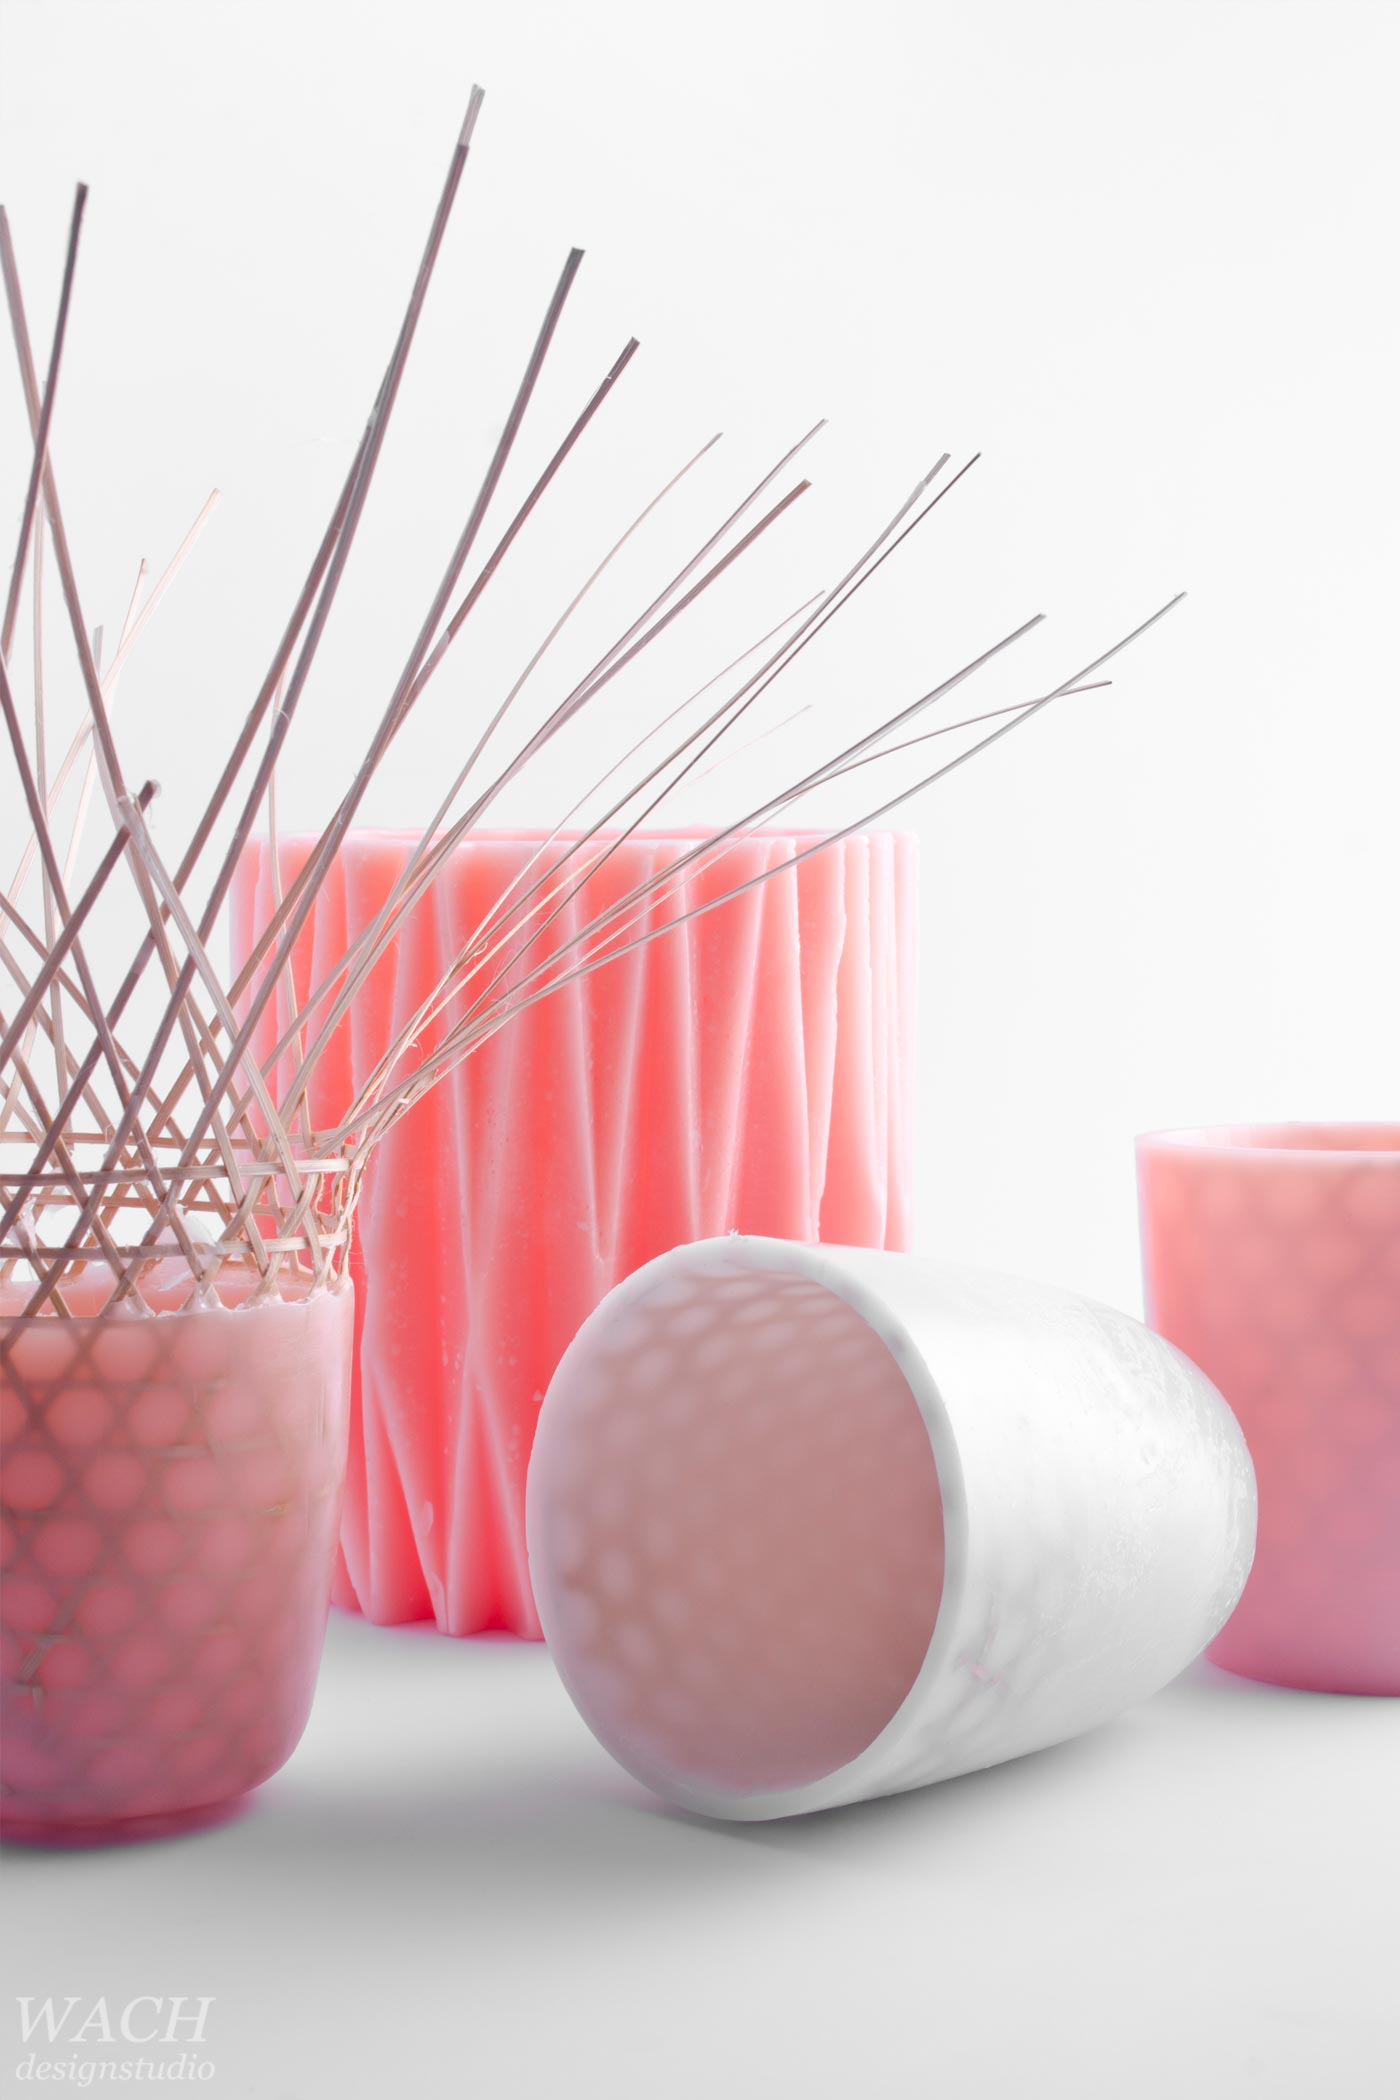 Wax objects designed by Patrik Nilsson for Hanoi Design Centre. Photography by WACH designstudio